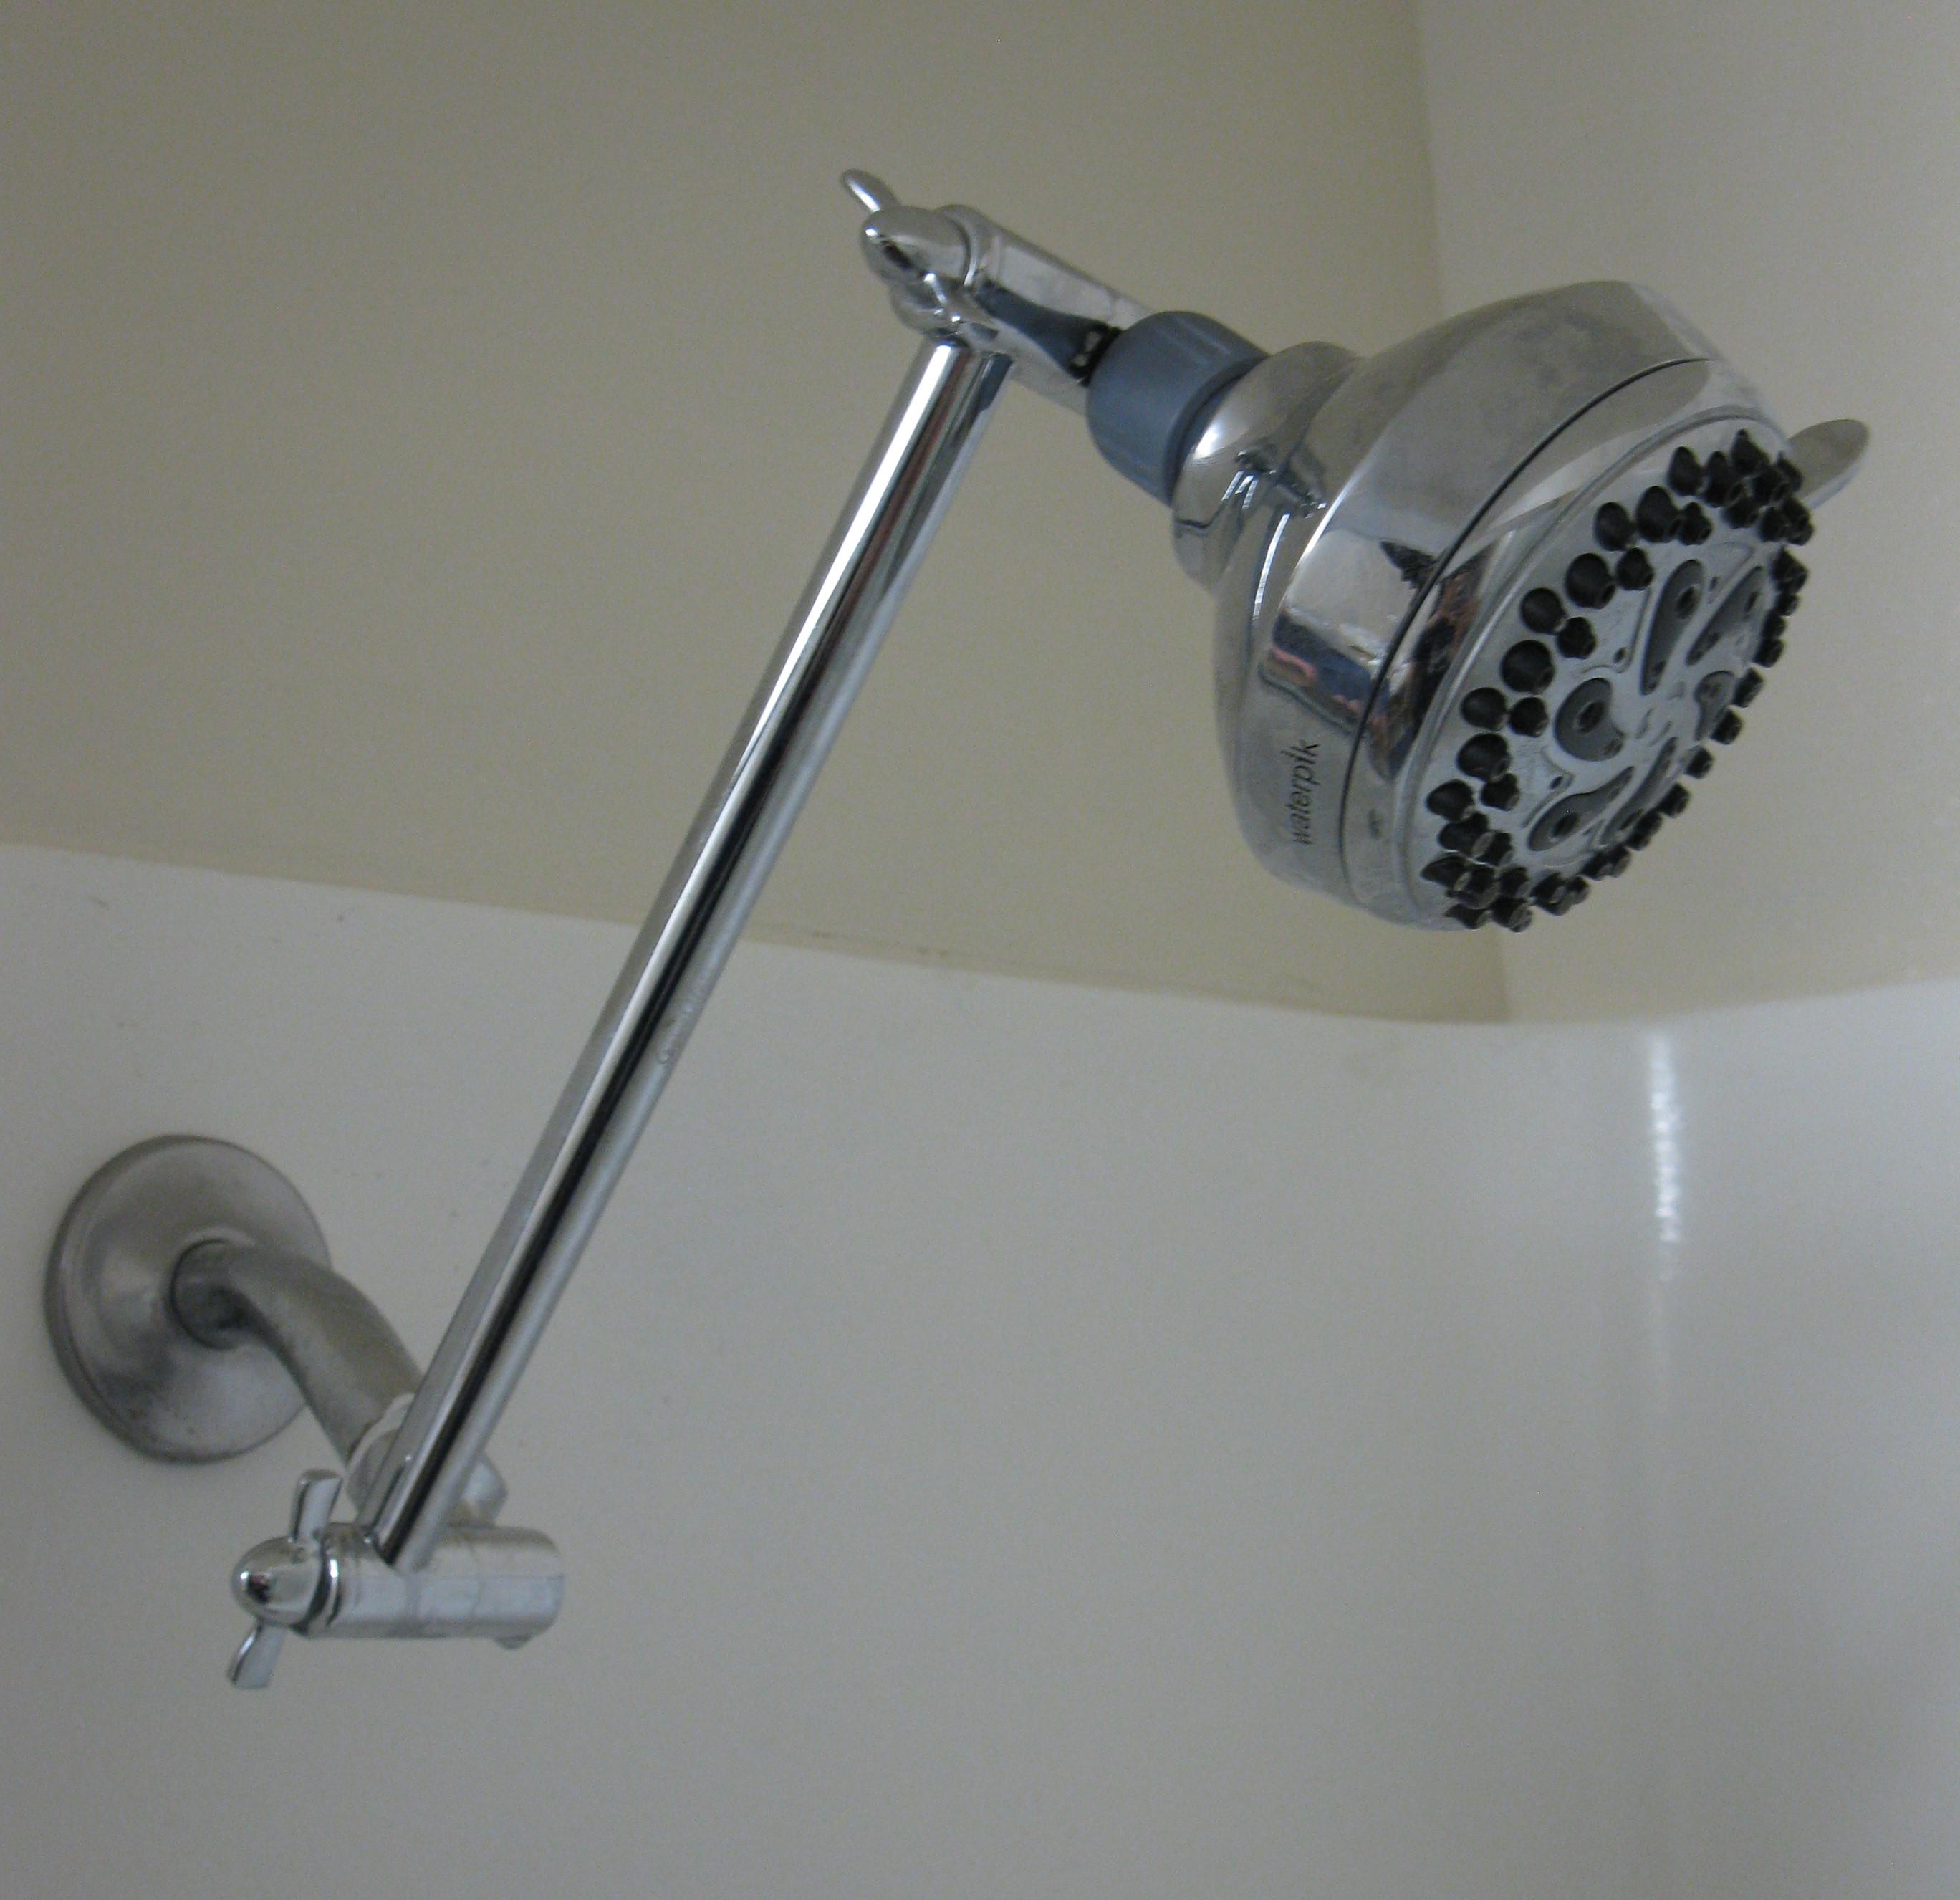 Bathroom Remodel - Toilet and Other Fixture Replacement - My Handy ...